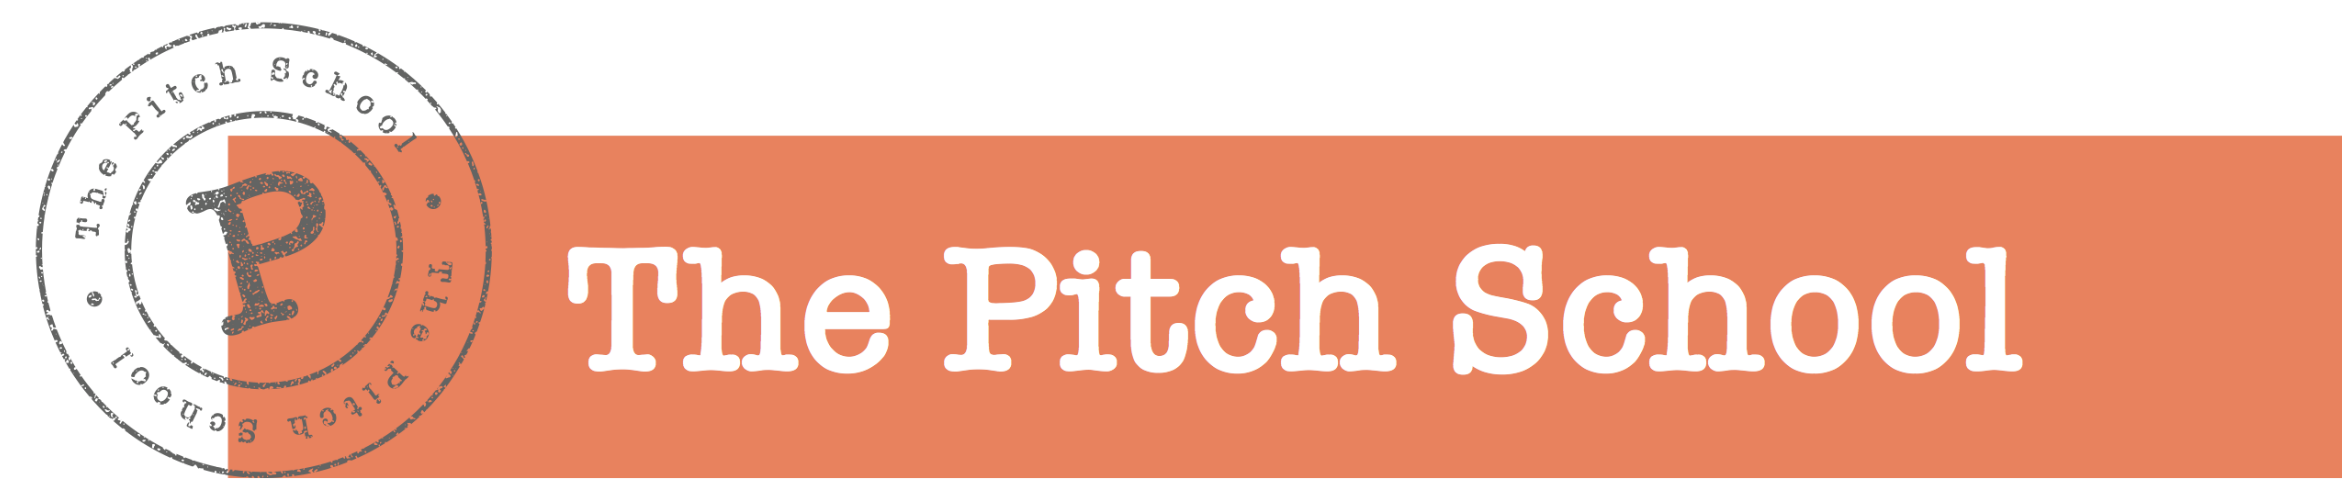 The Pitch School